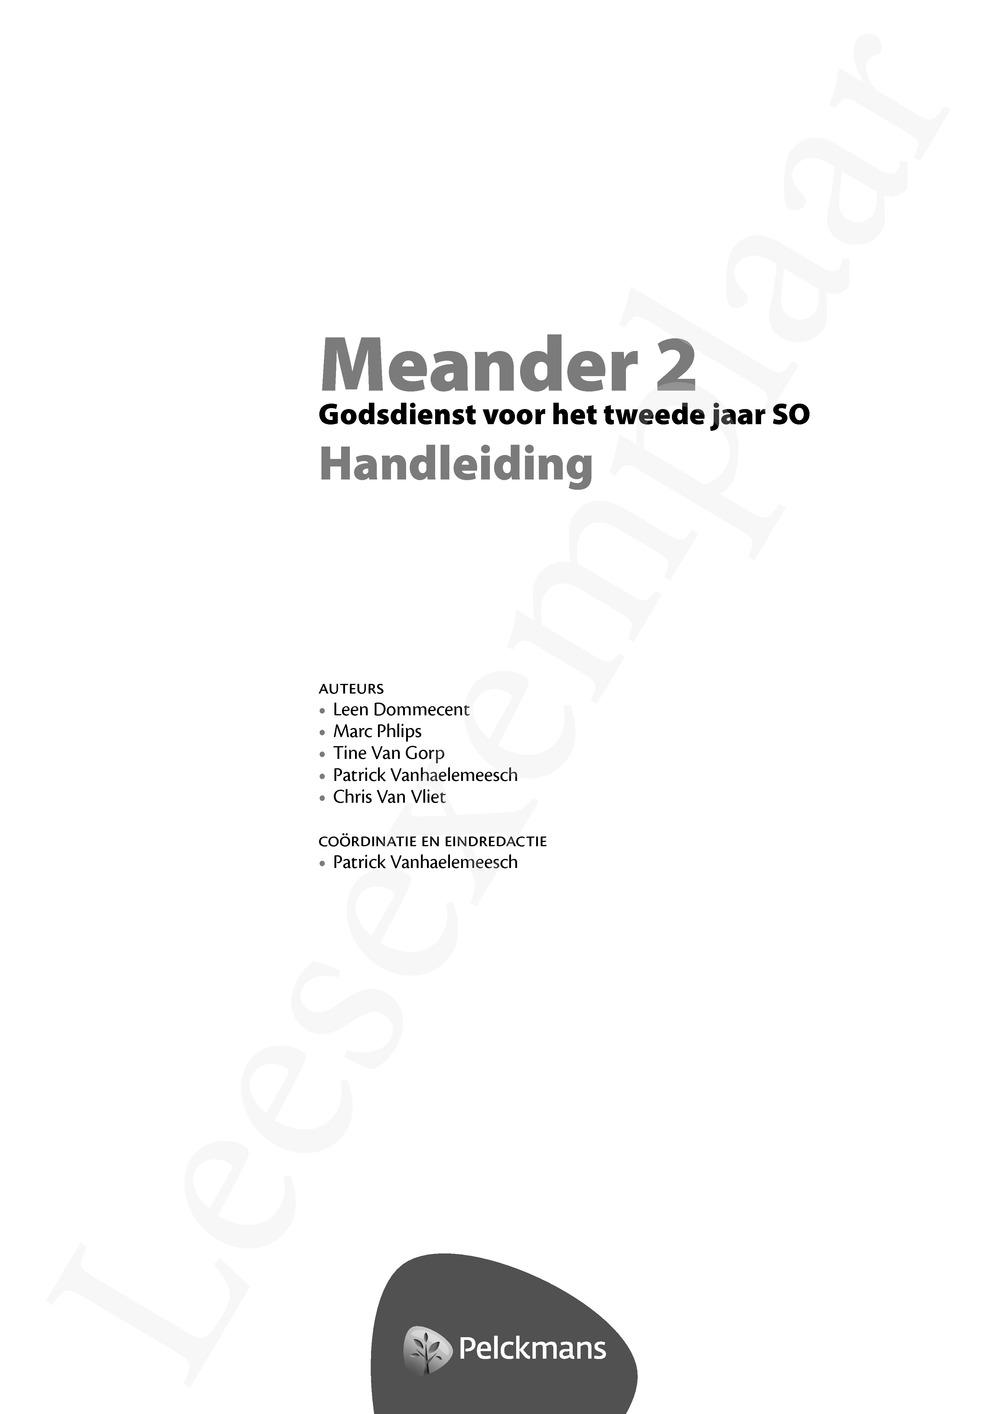 Preview: Meander 2 Handleiding